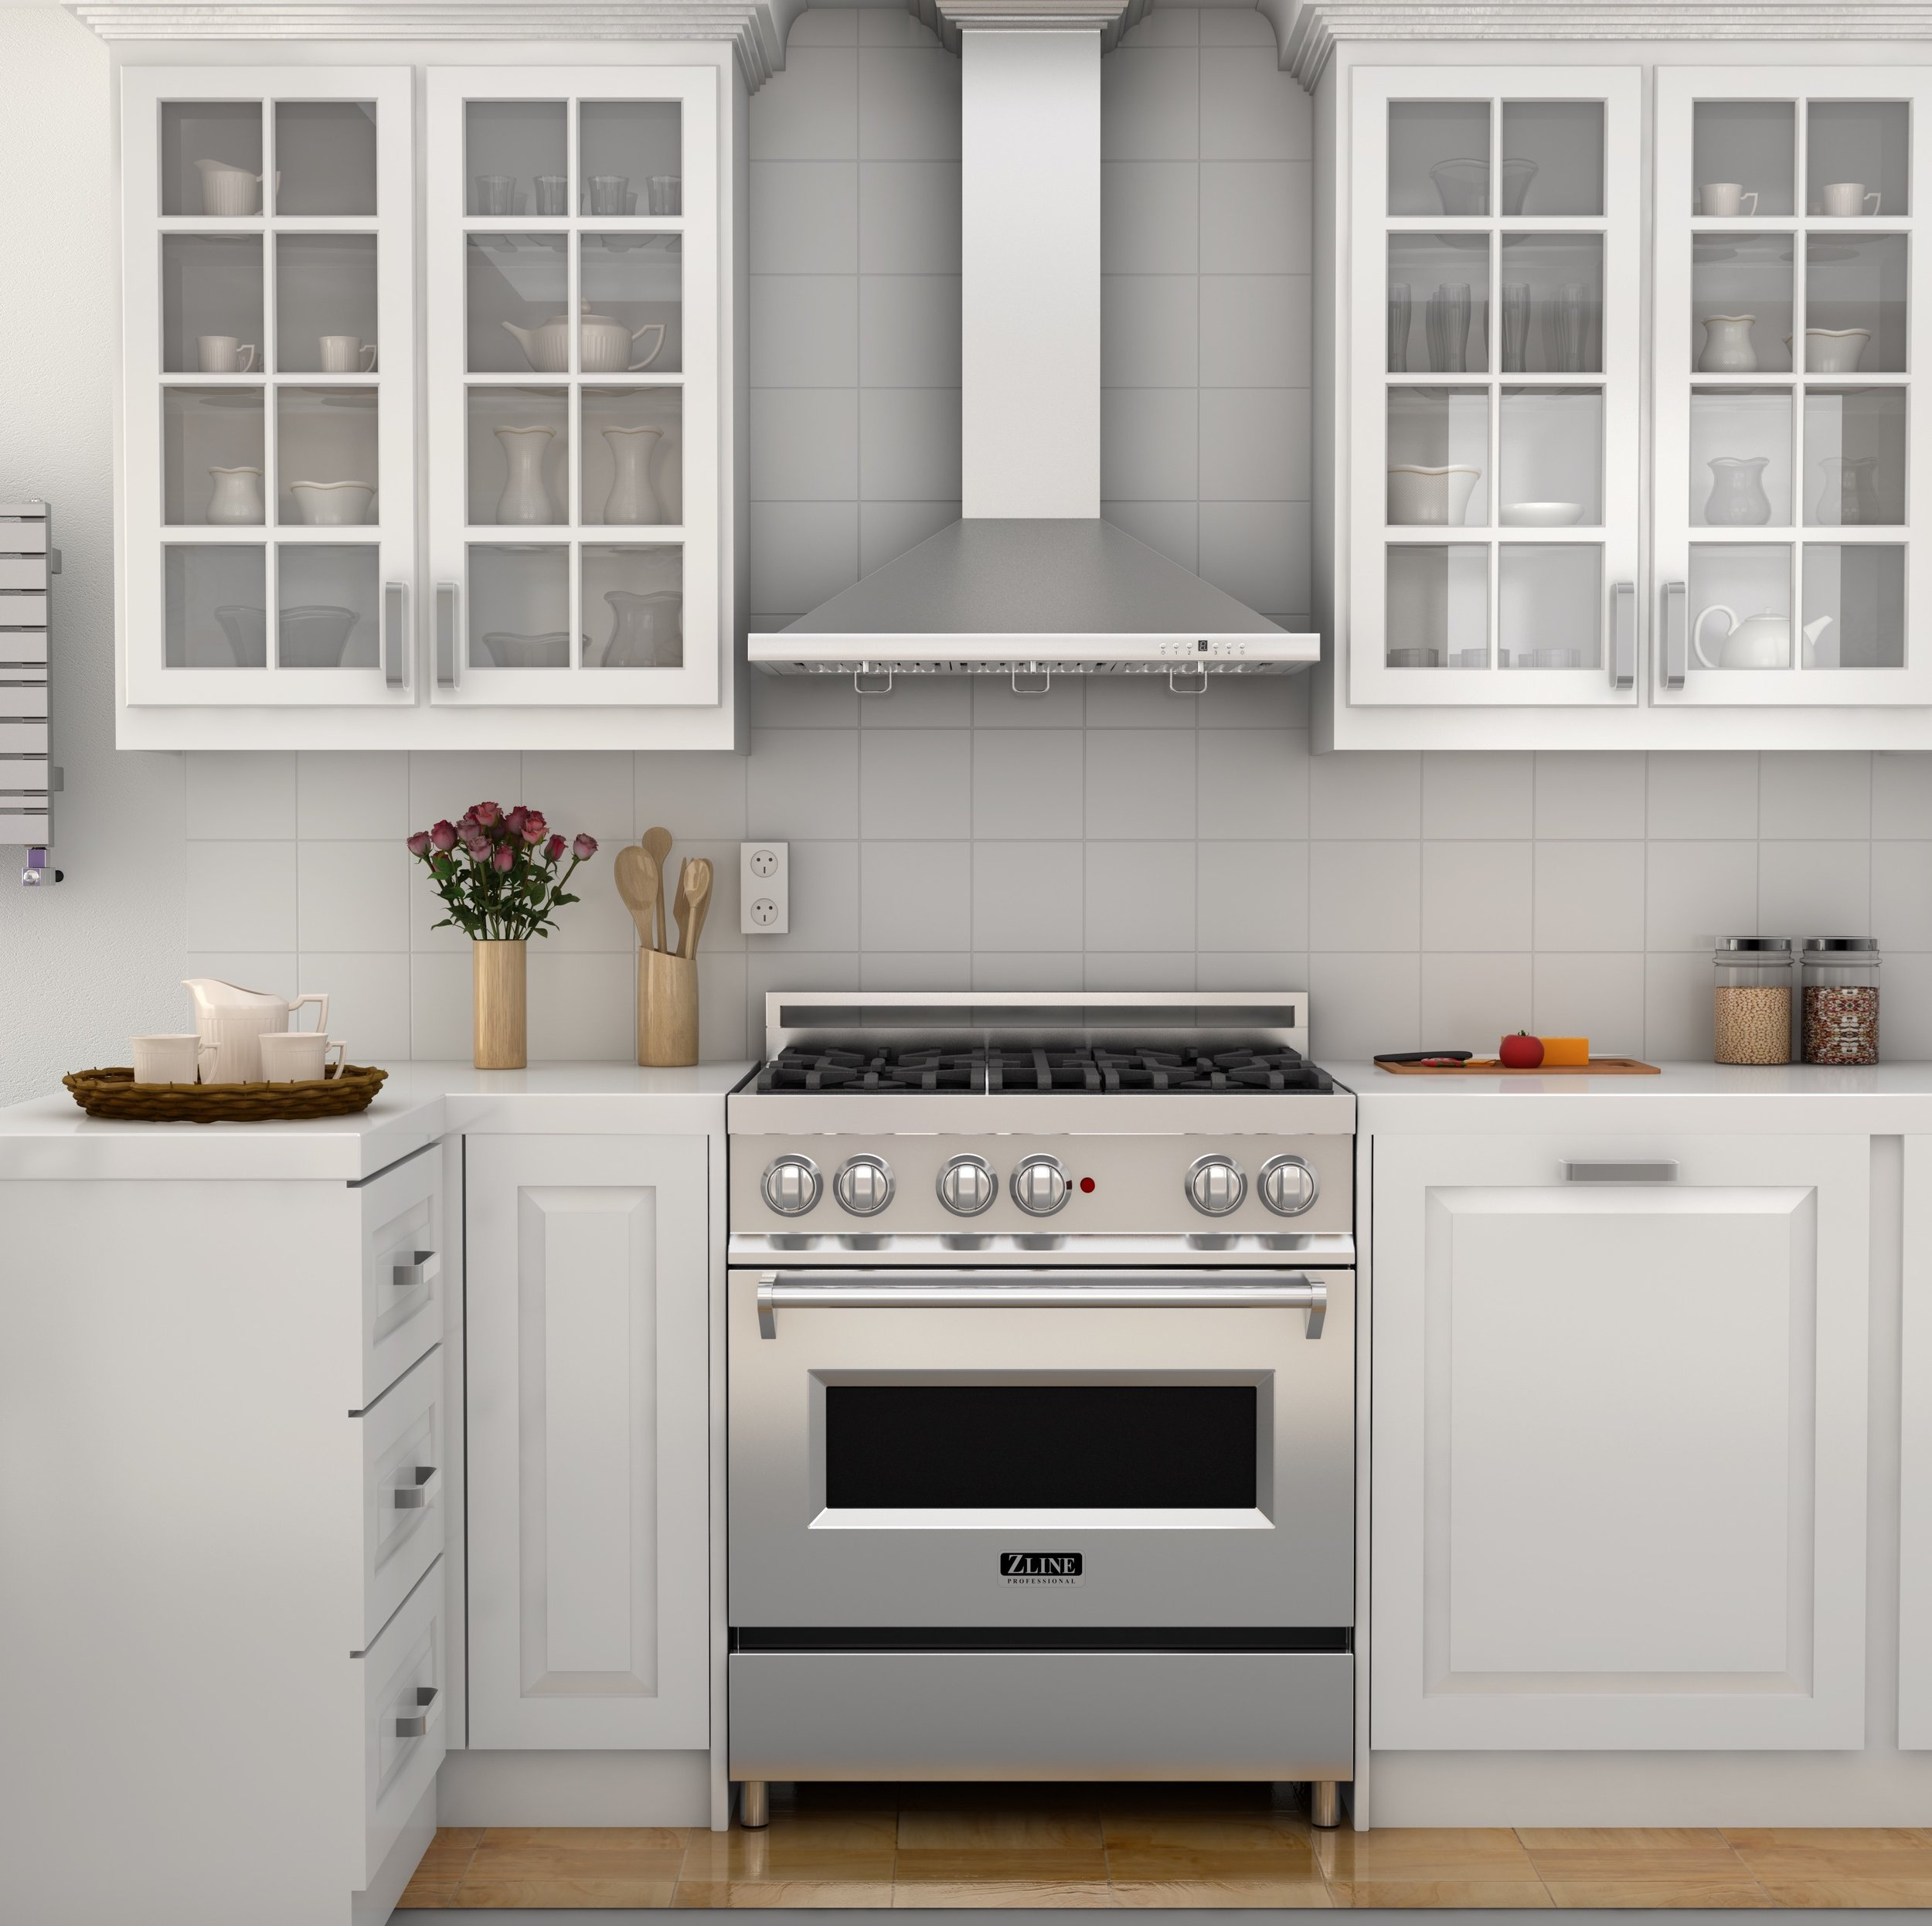 kitchen range hoods home depot appliance packages stainless steel kb zline wall mounted hood